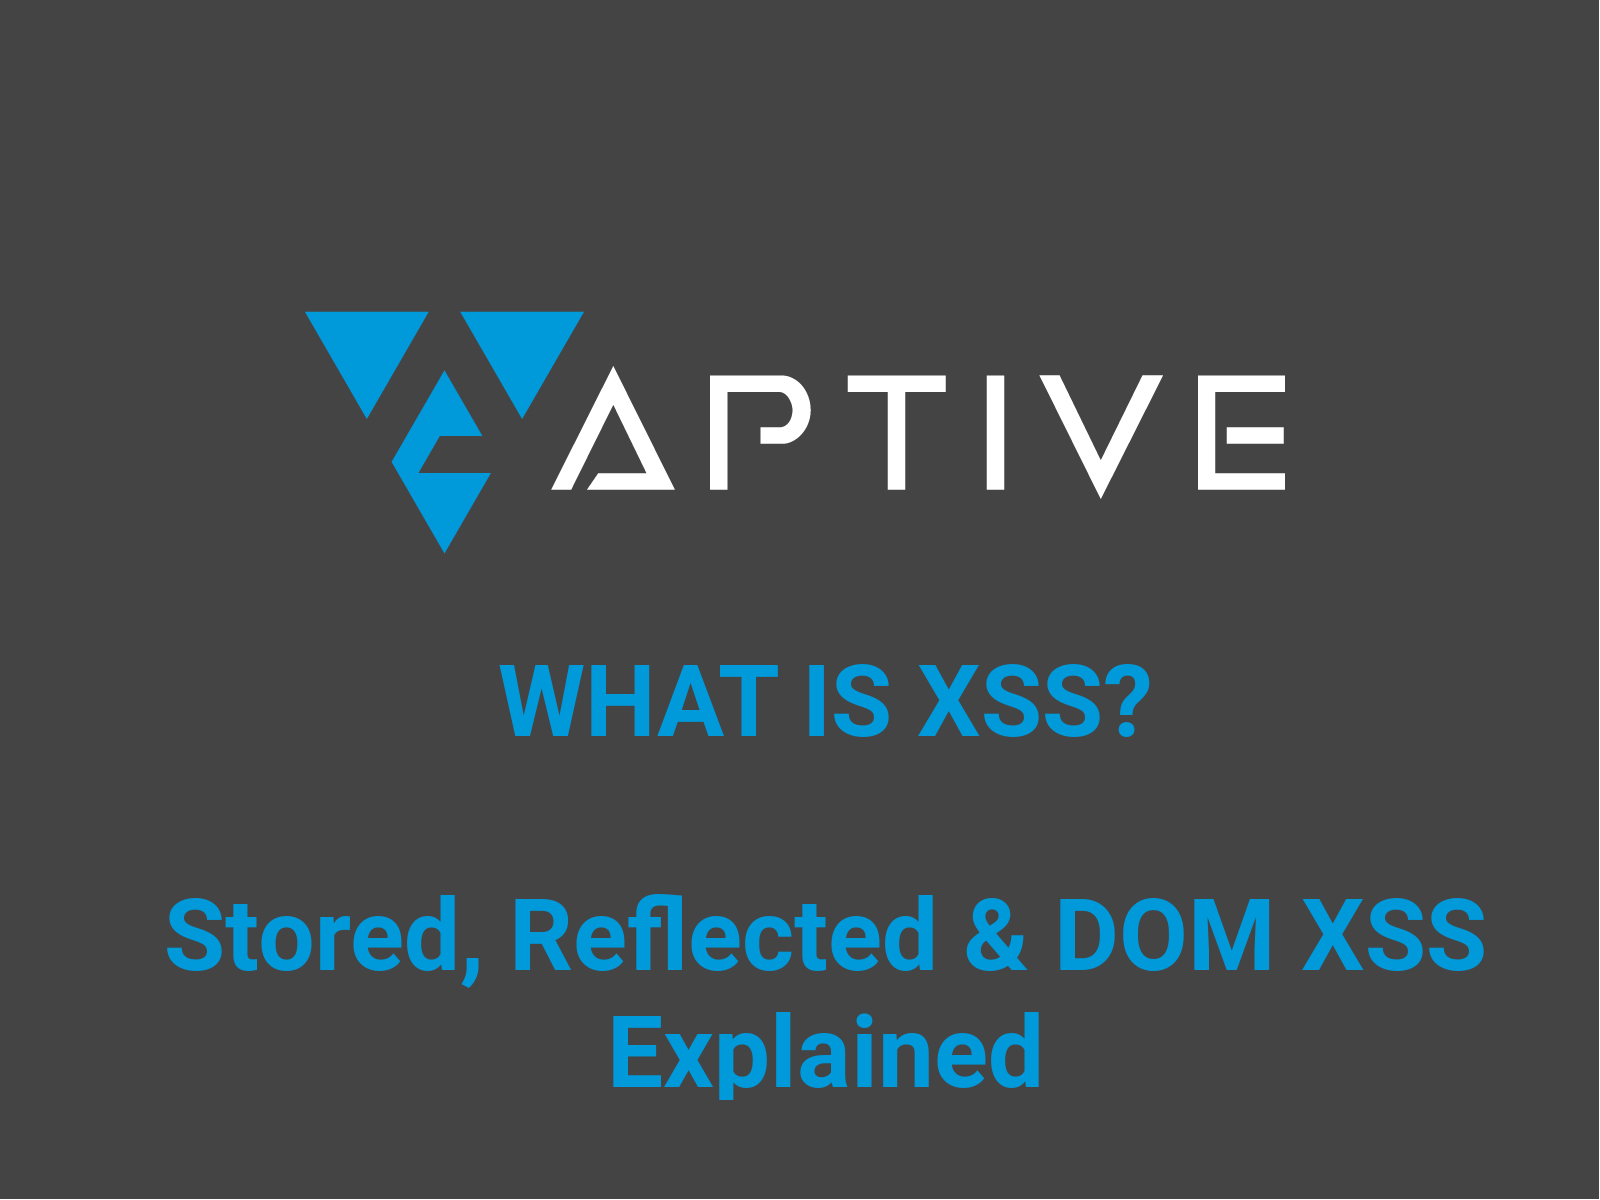 What is XSS (Cross-site Scripting)?